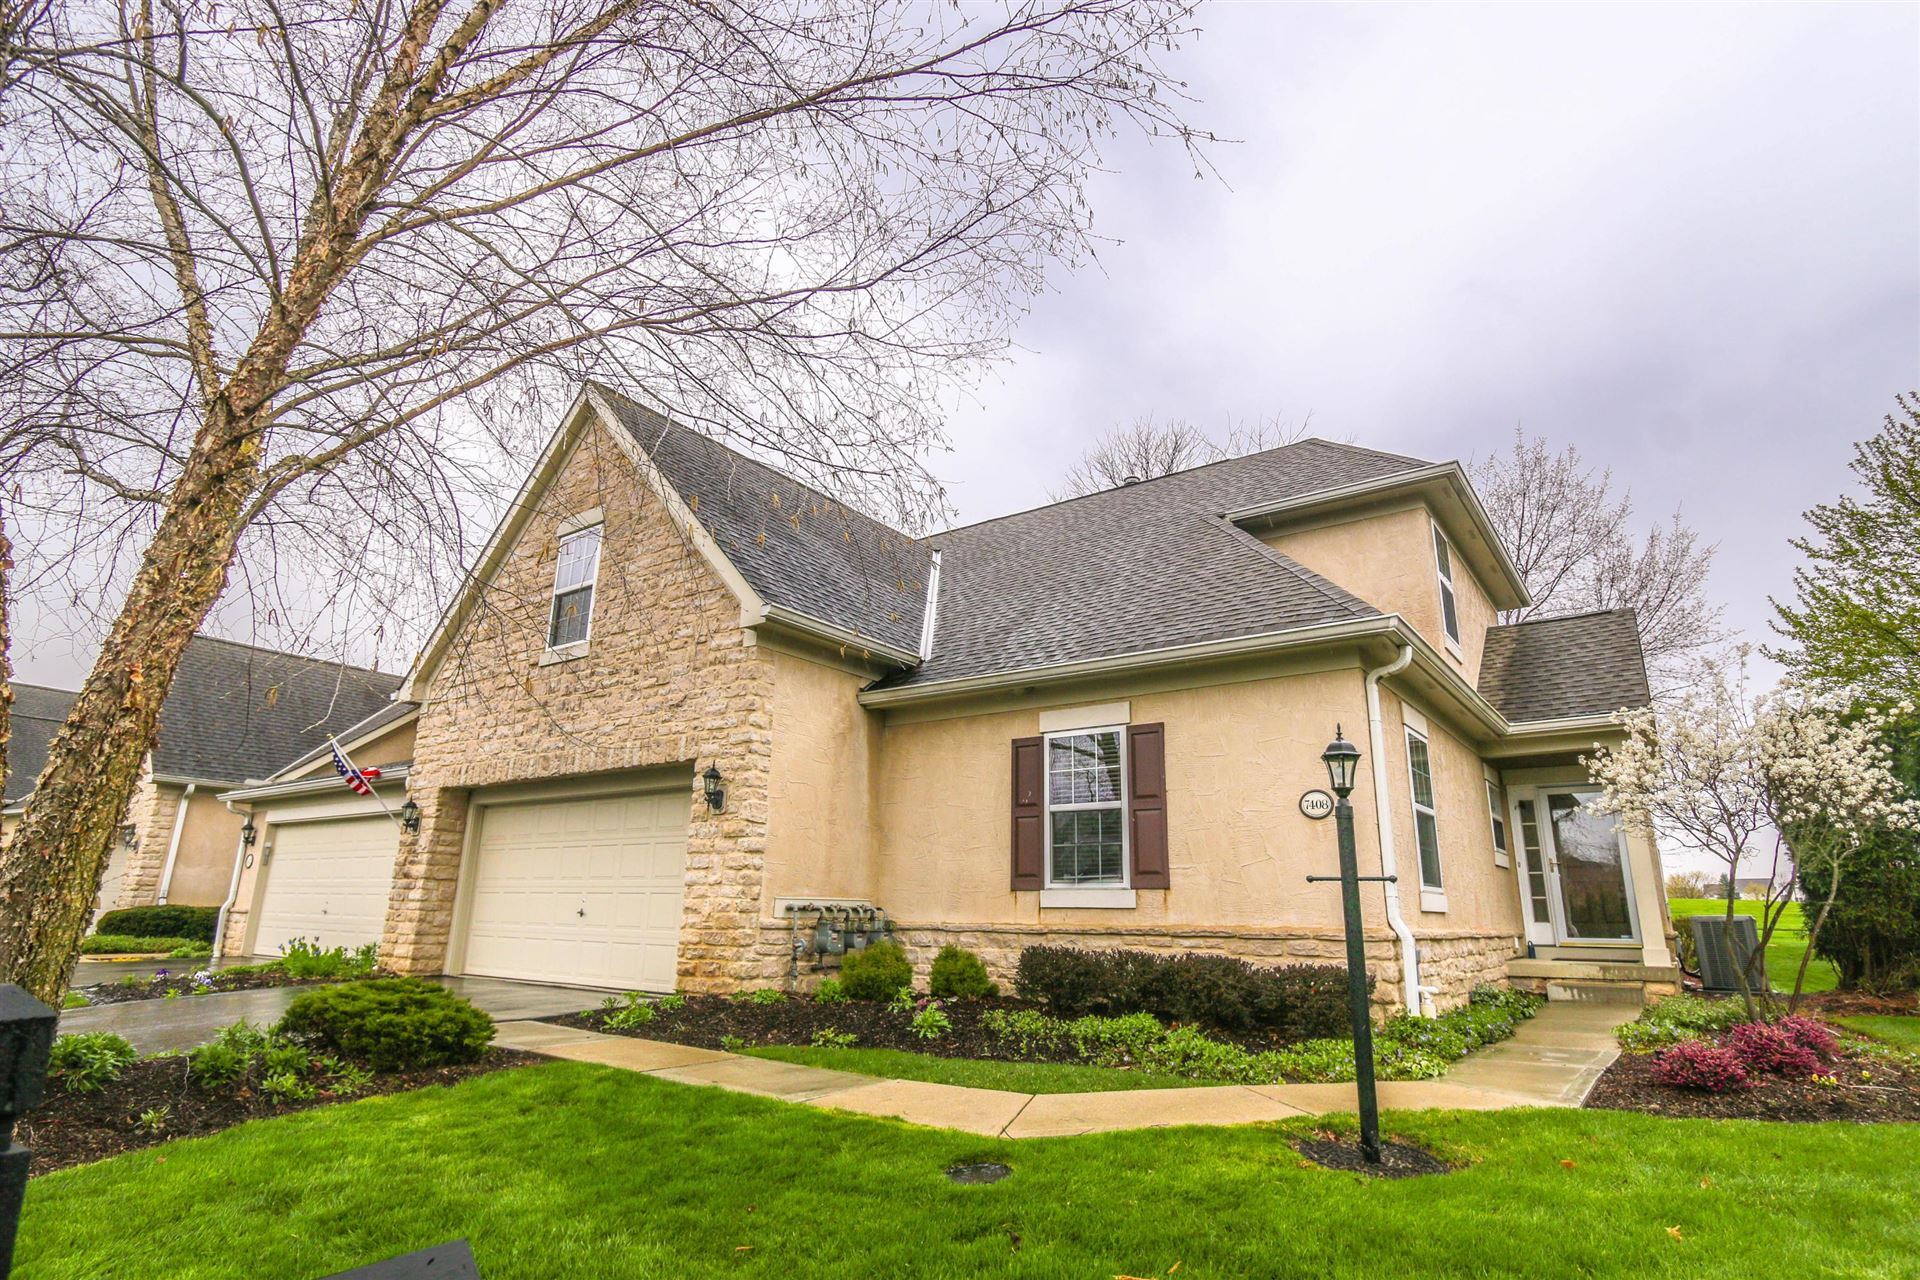 7408 Avendale Drive, Powell, OH 43065 - #: 220007144